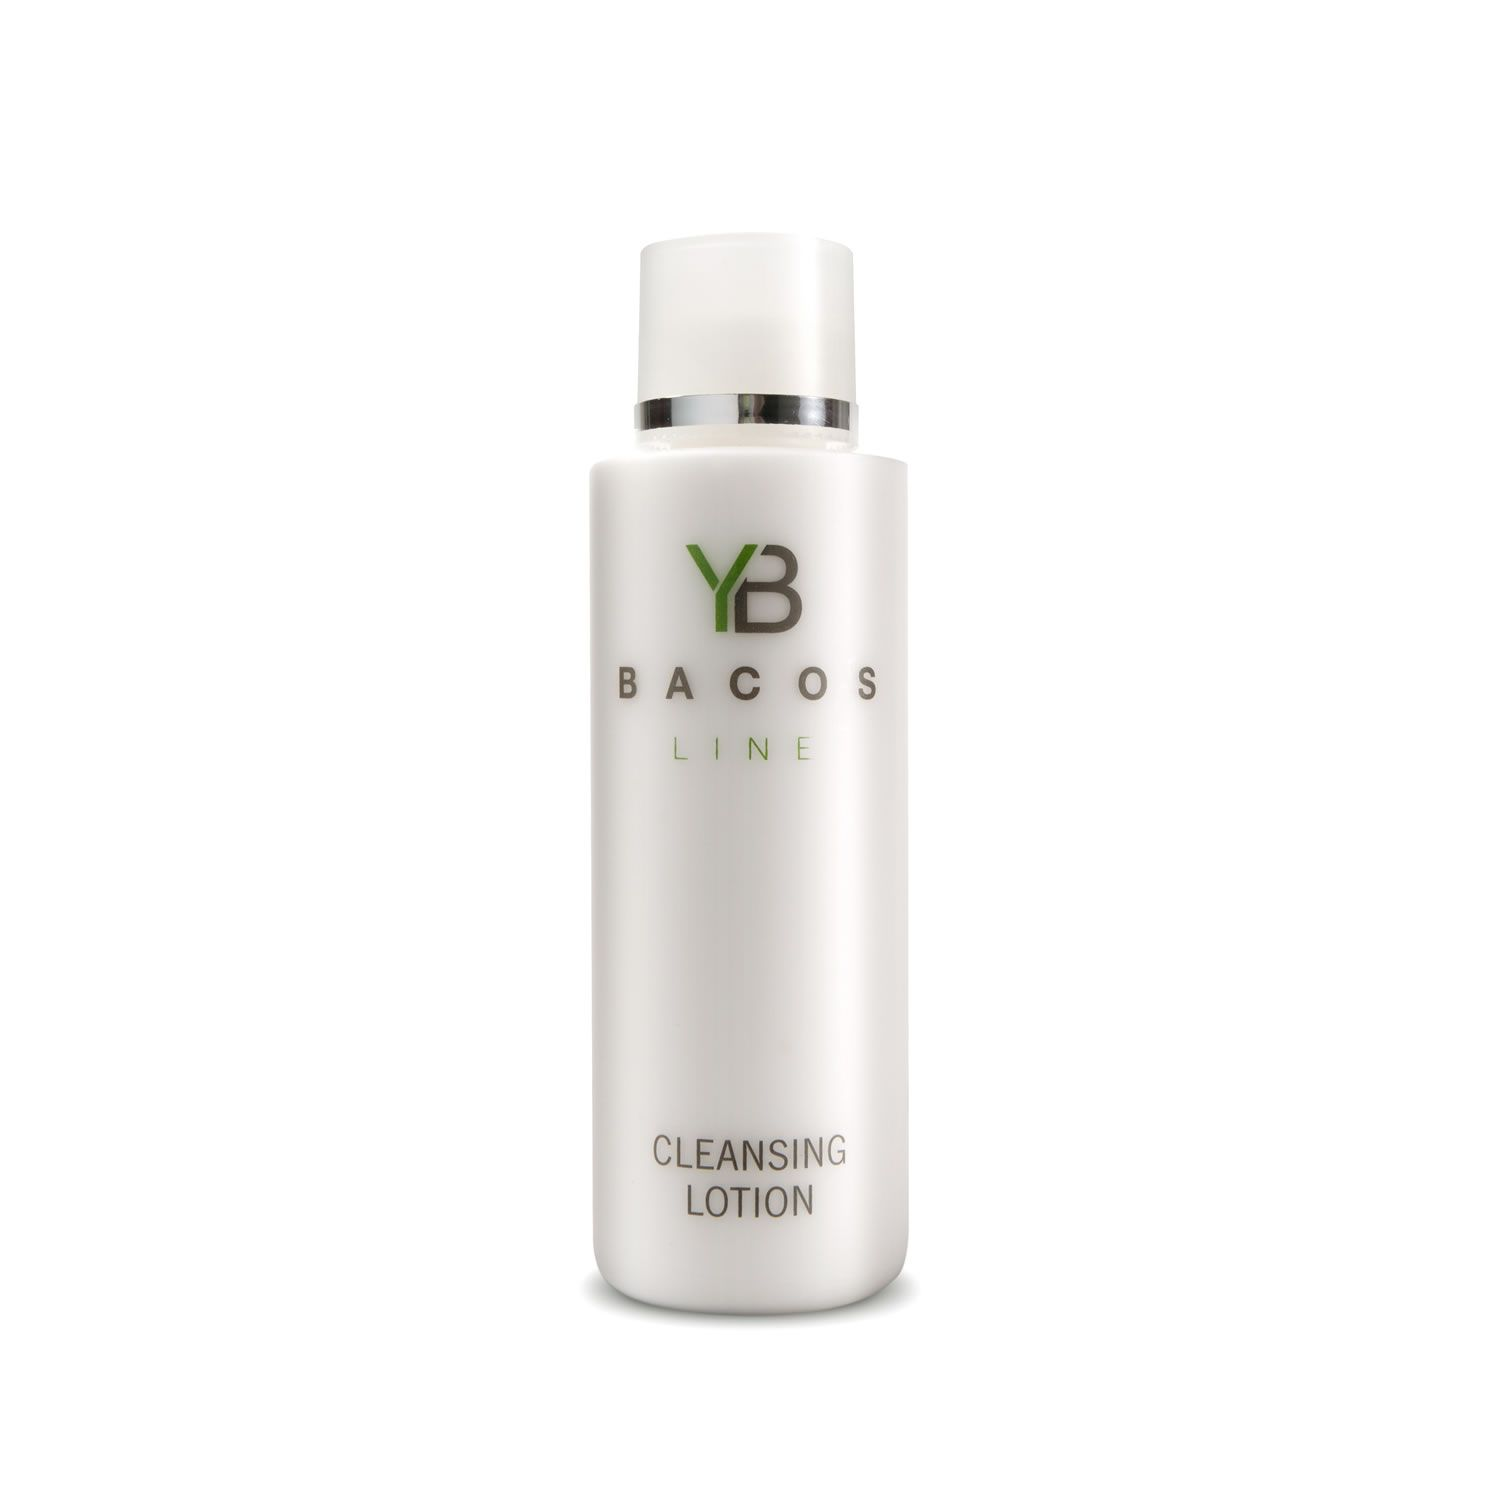 Wonderlift Young Basic Bacos Line Cleansing Lotion 200 ml